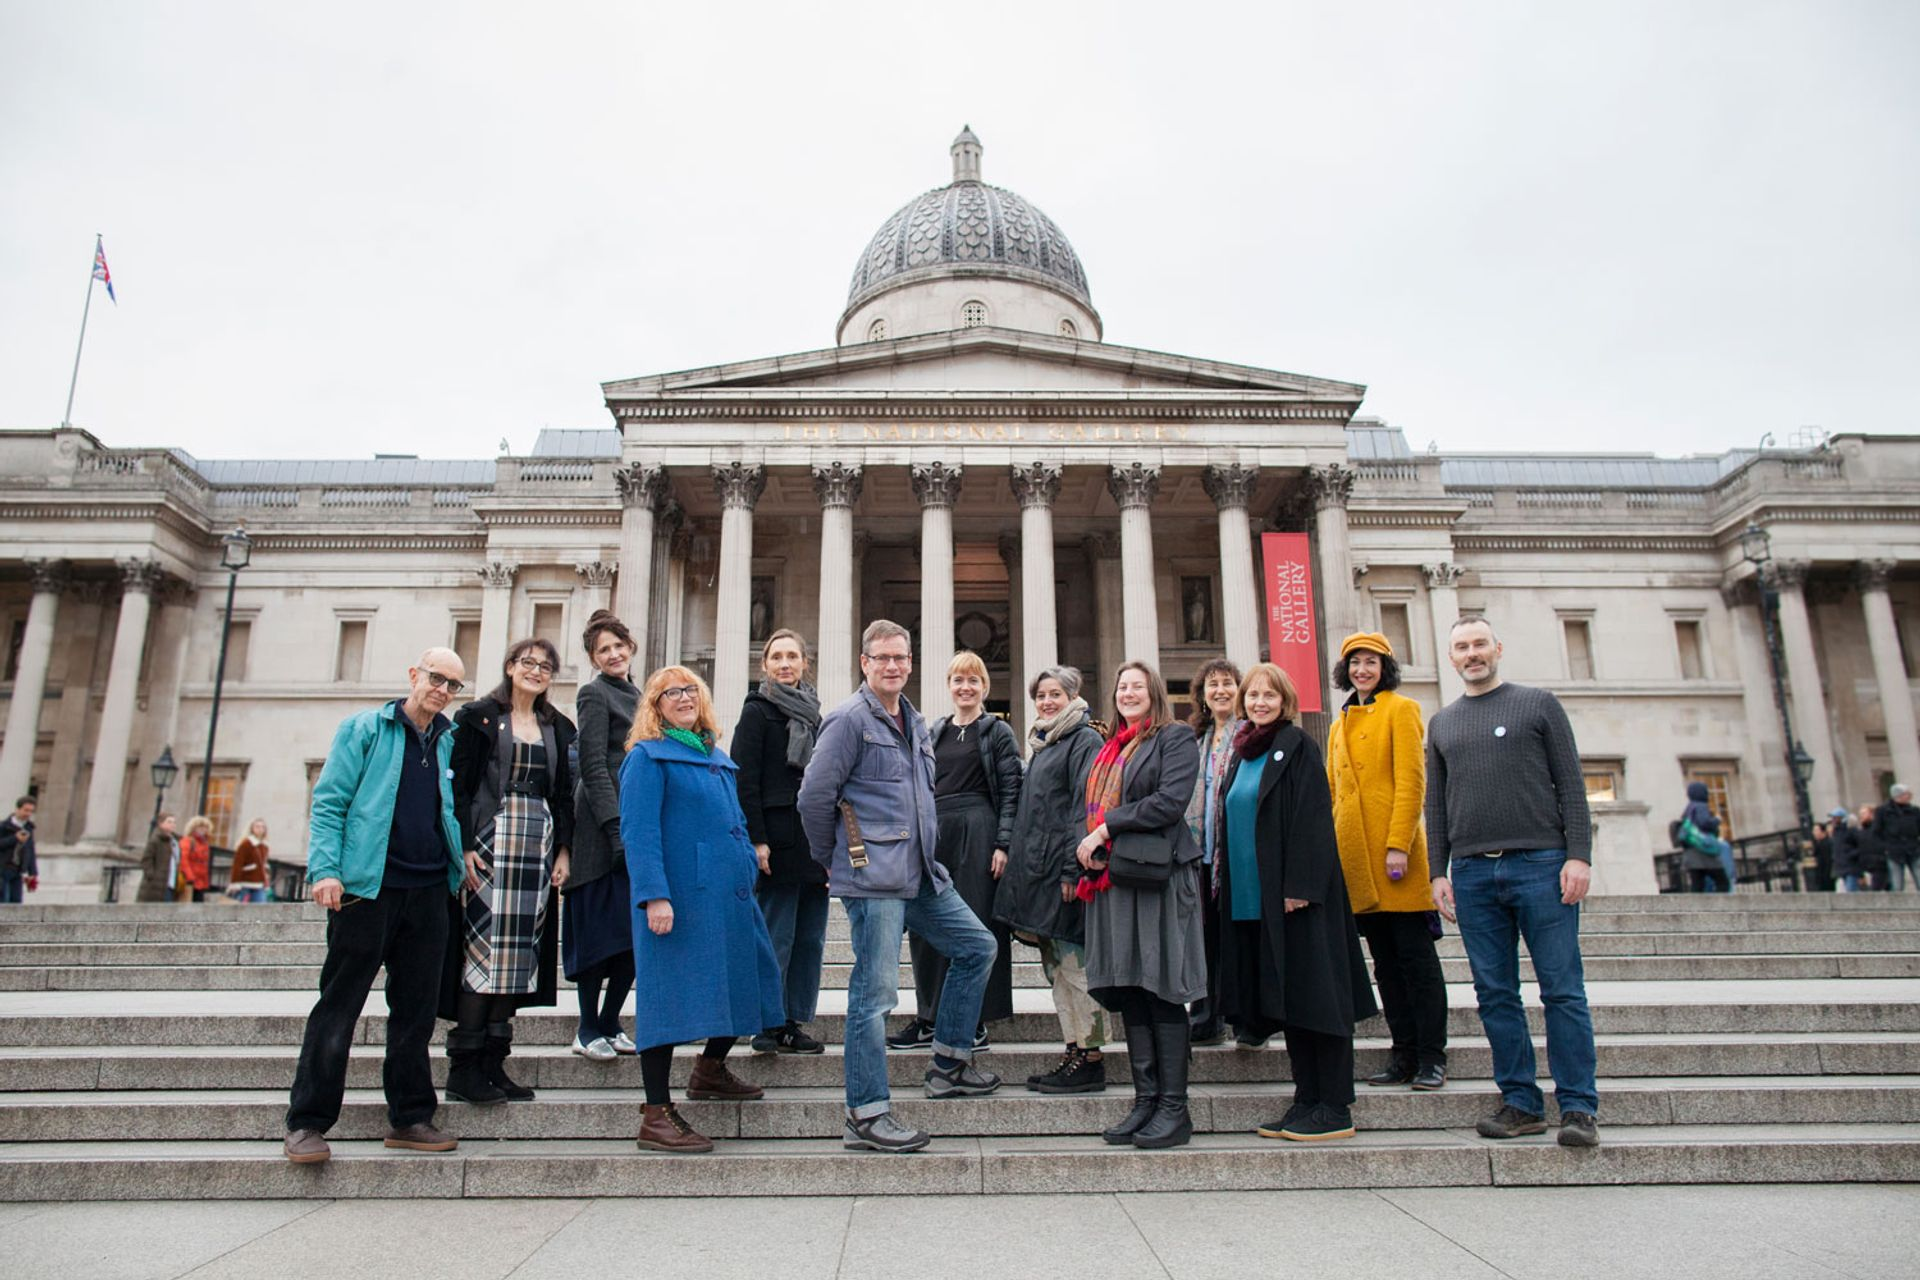 Members of the NG27 group of artists, art historians and lecturers outside the National Gallery in London © Jo Hone Photography